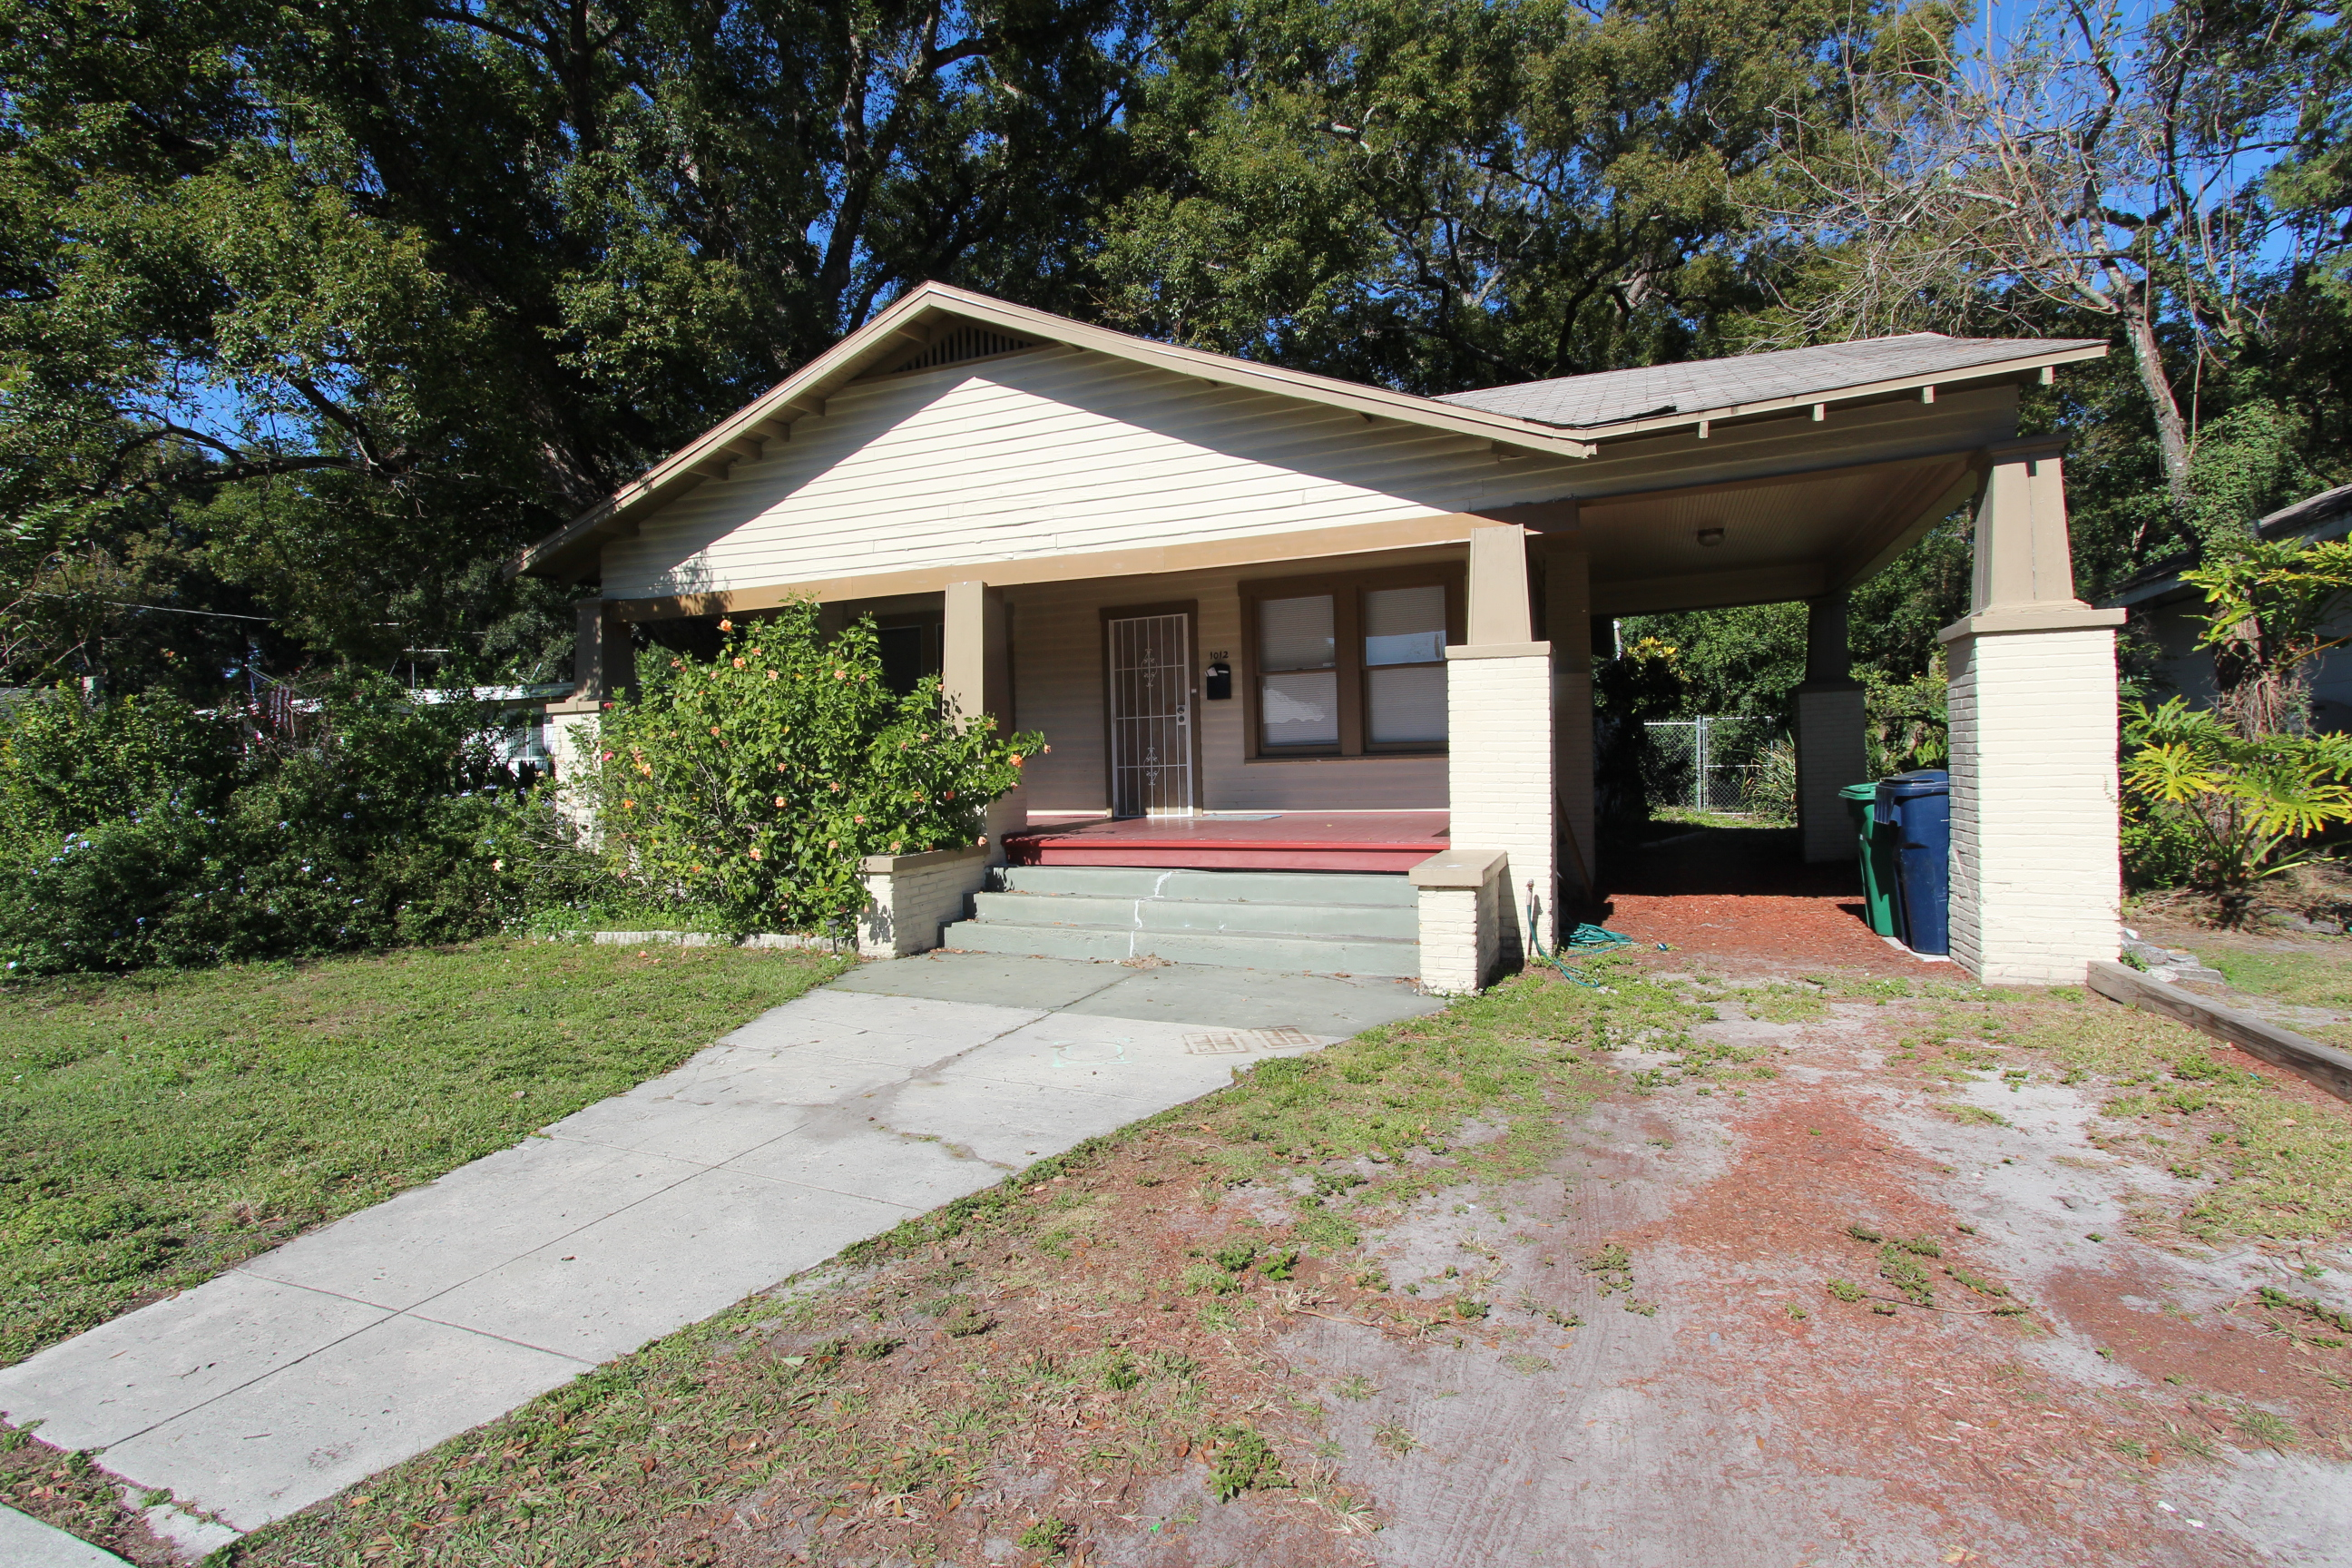 House for Rent in SEMINOLE HEIGHTS